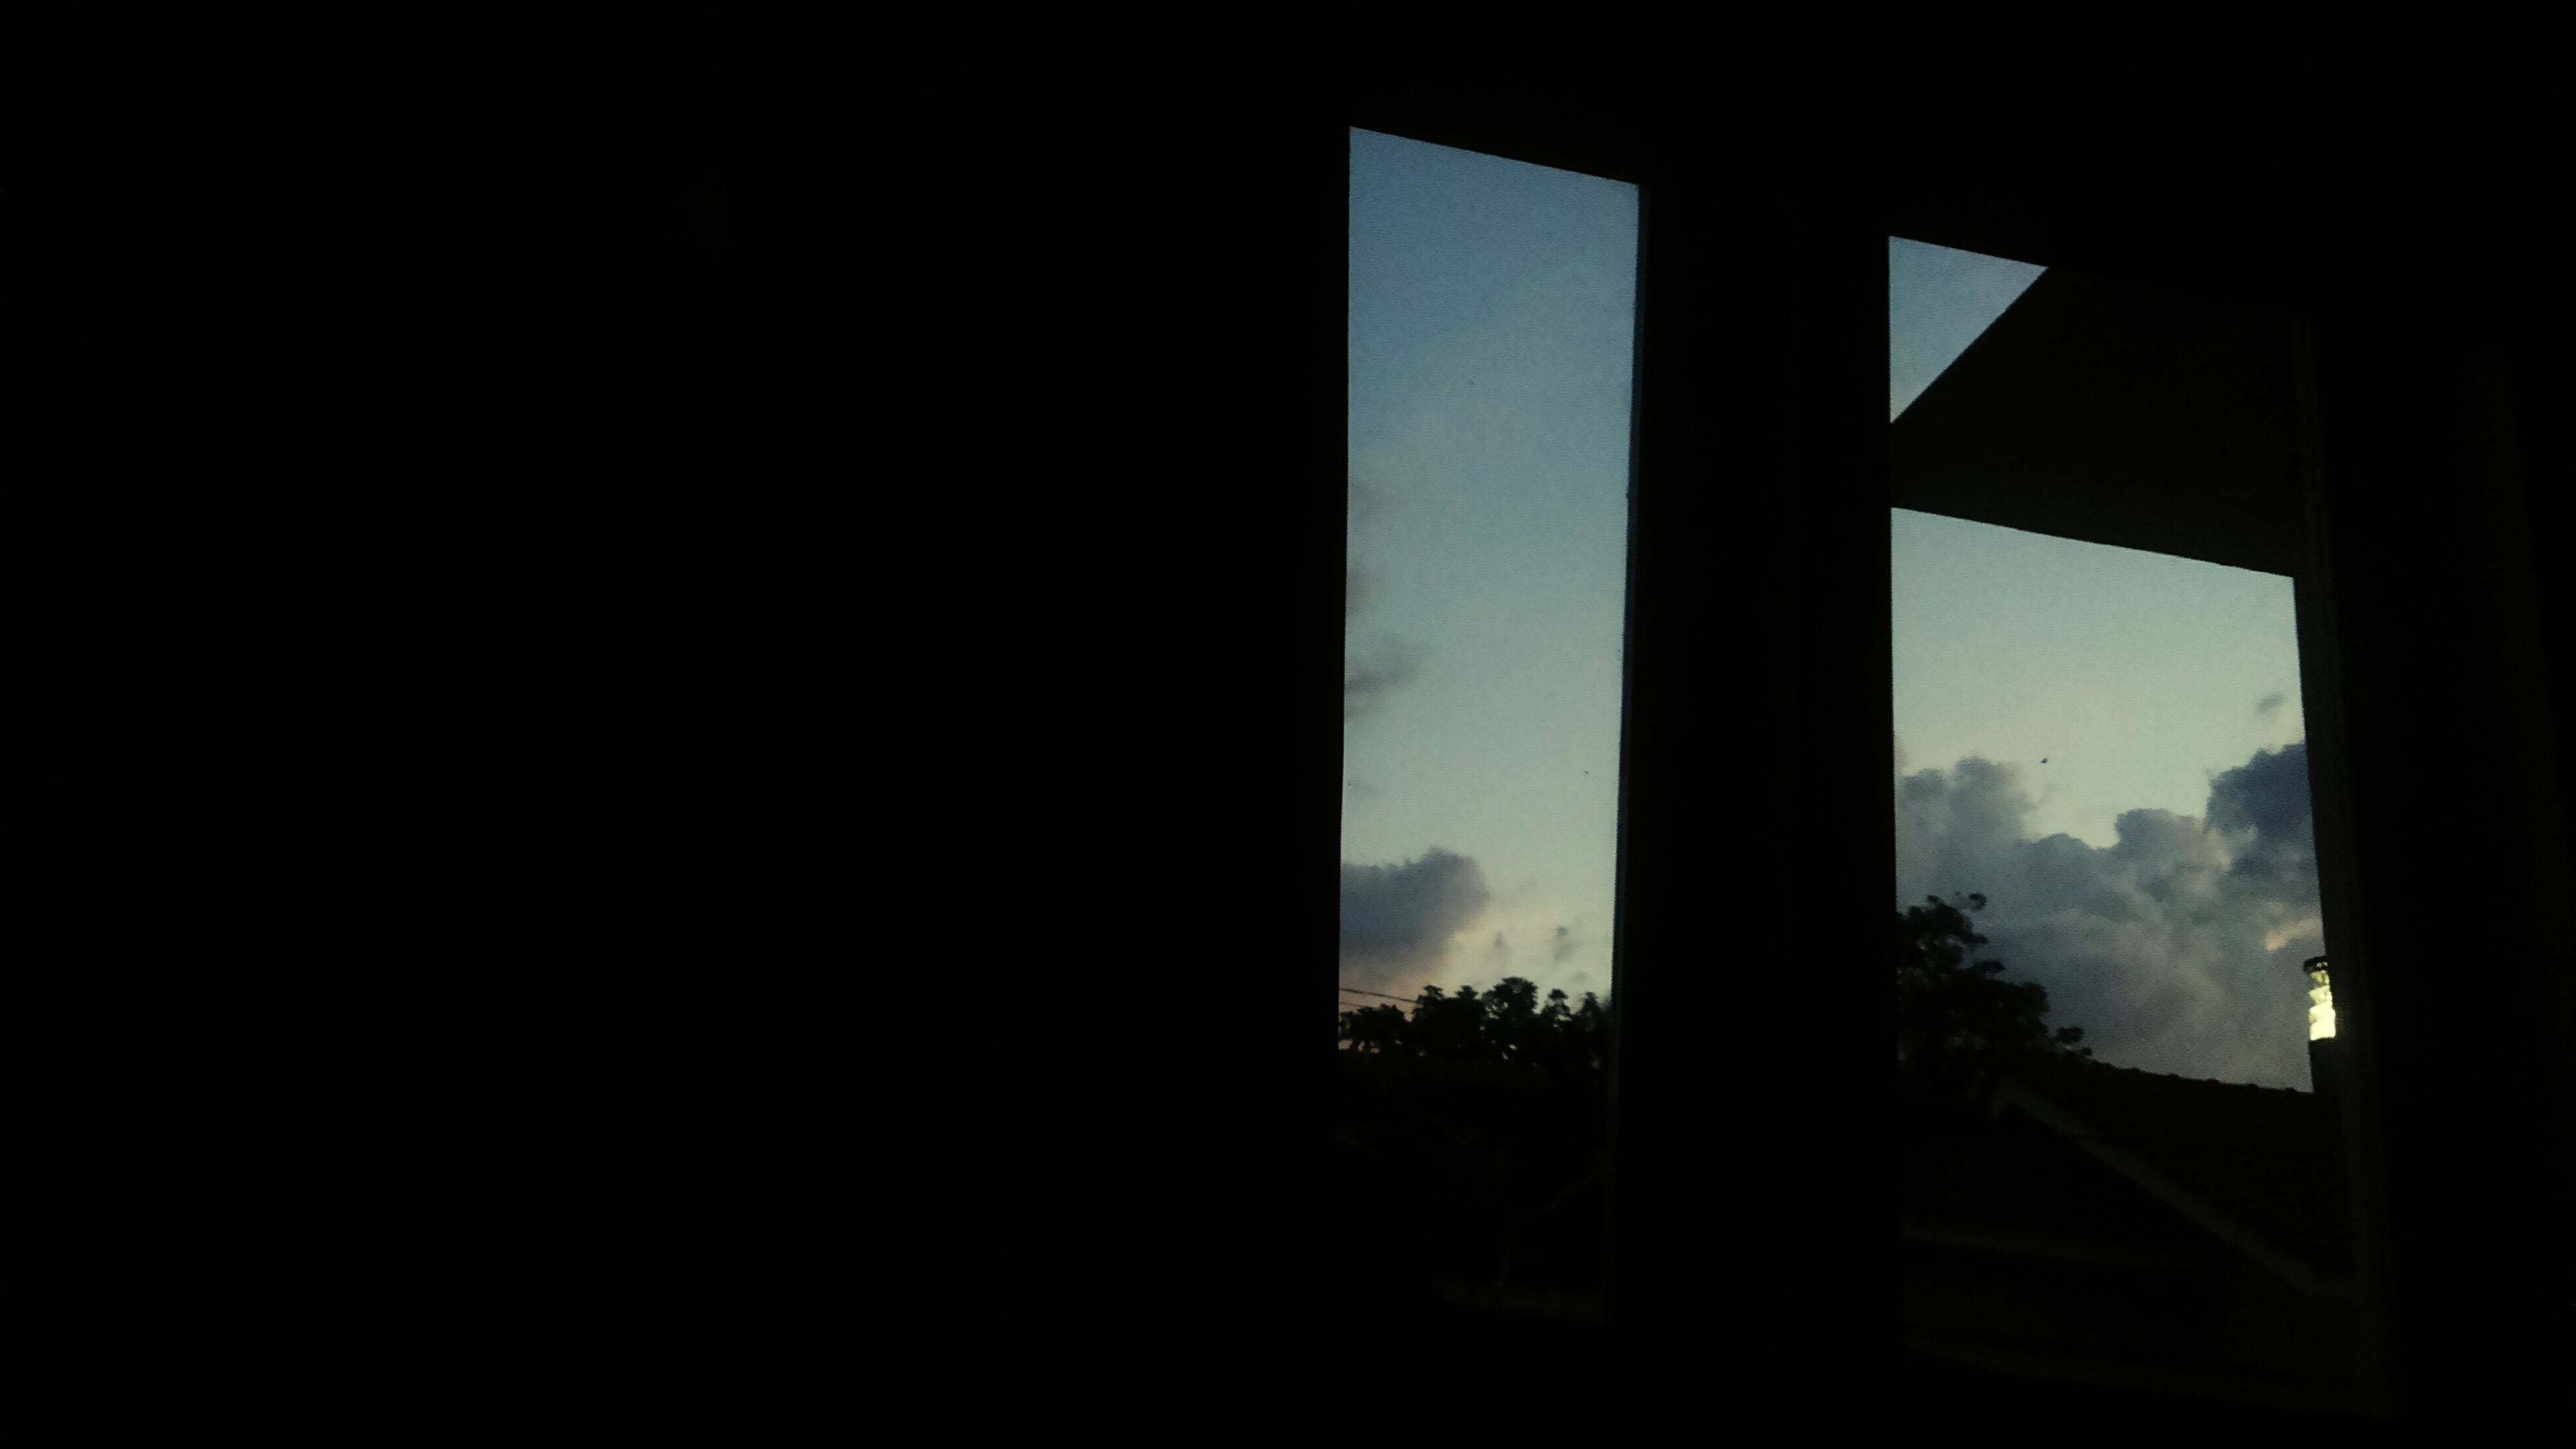 indoors, window, silhouette, dark, built structure, architecture, copy space, sky, tree, glass - material, transparent, house, day, looking through window, no people, home interior, sunlight, nature, clear sky, curtain